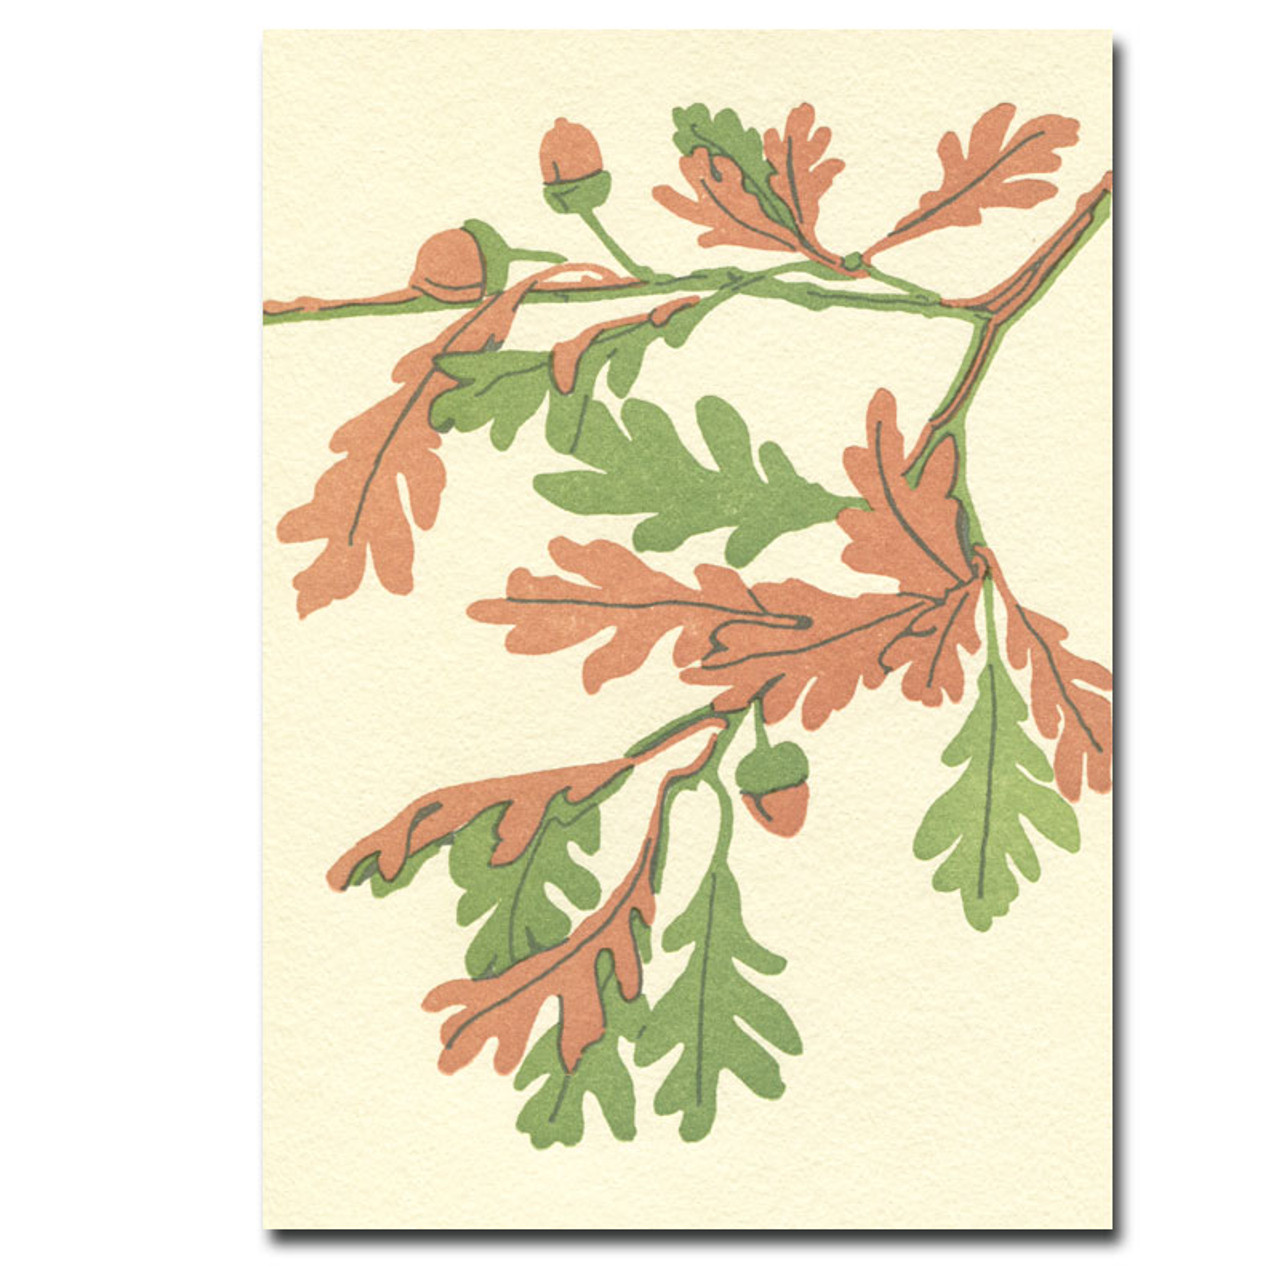 Saturn Press All Occasion Letterpress Card features and oak branch with acorns